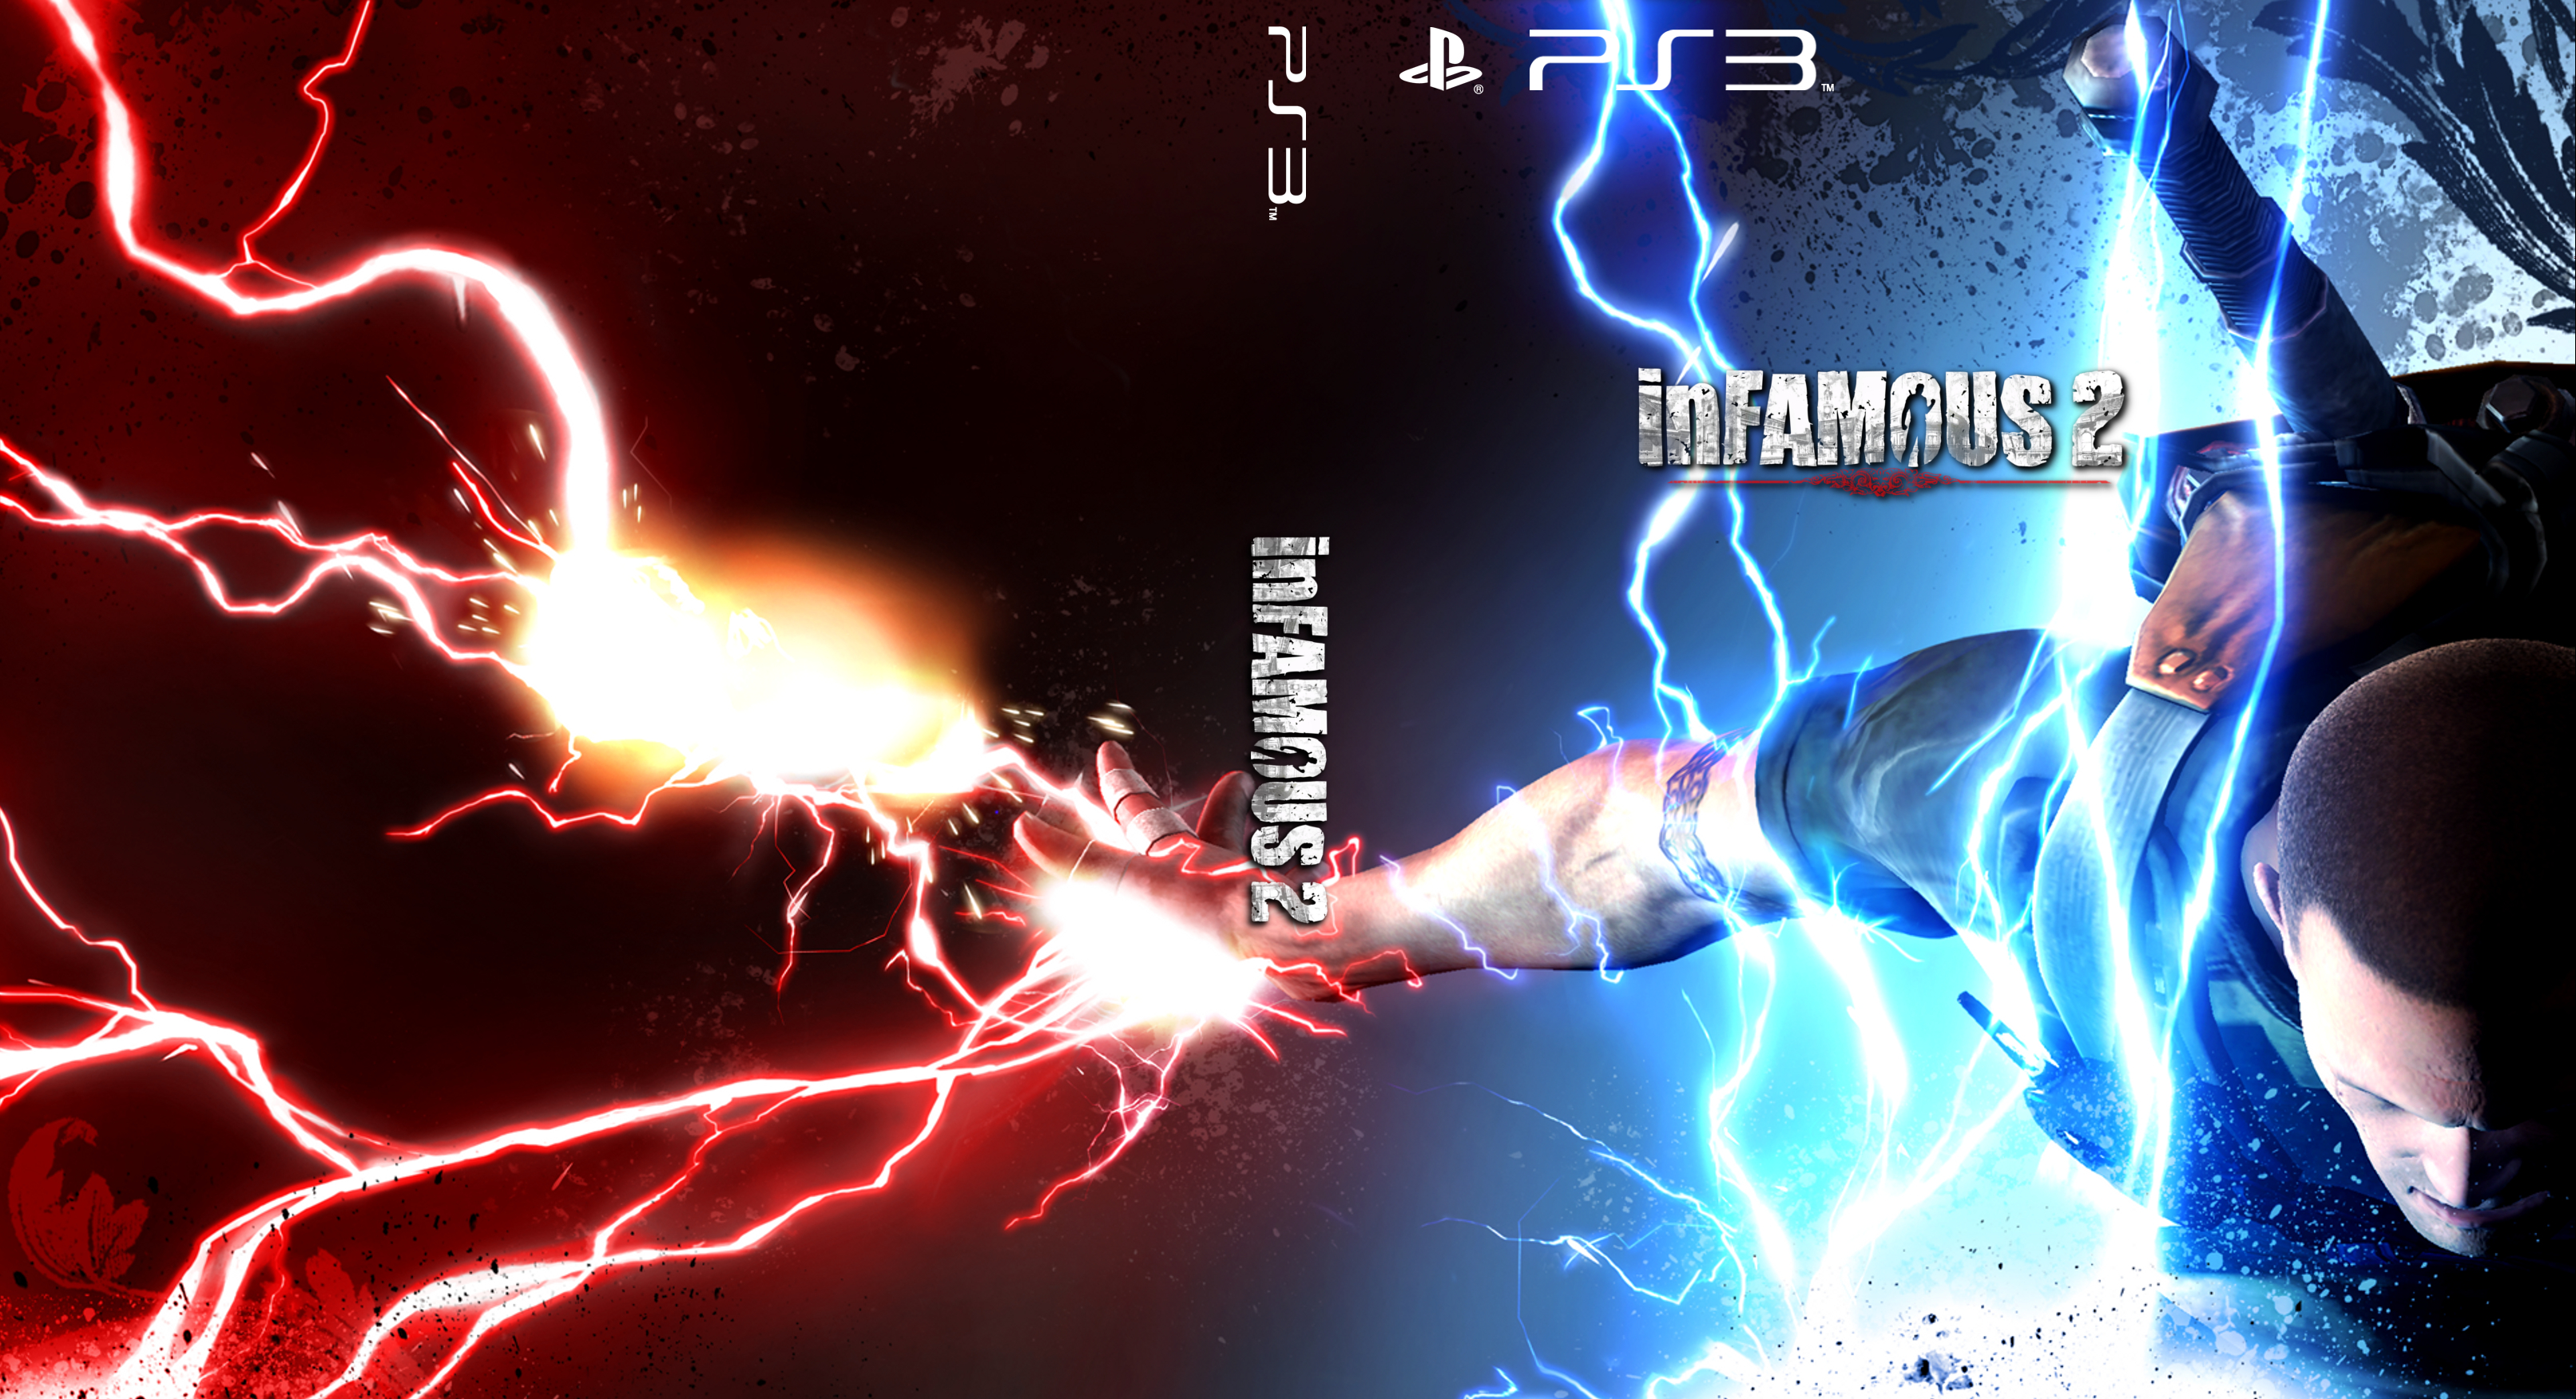 Infamous 2 HD Wallpaper